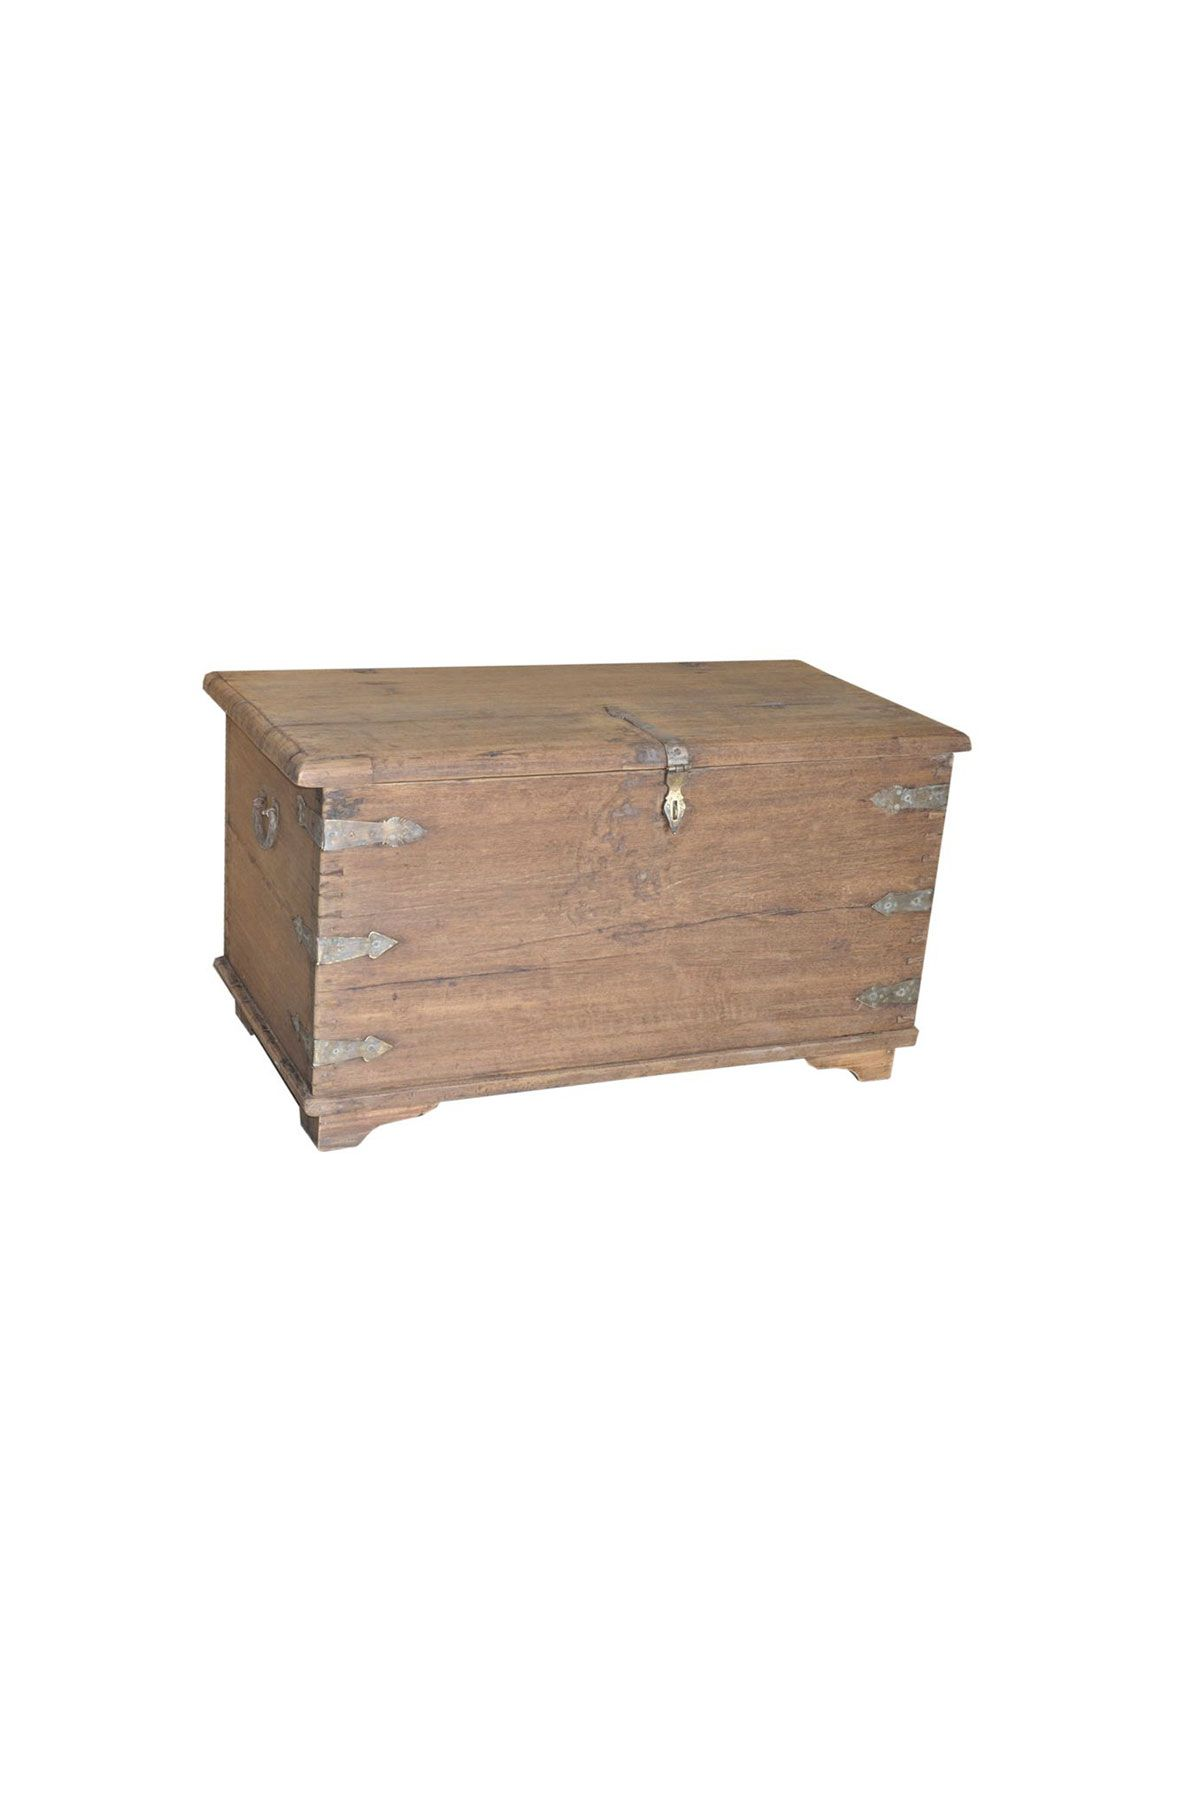 Multipurpose stylish antique indian wooden trunk wooden chest